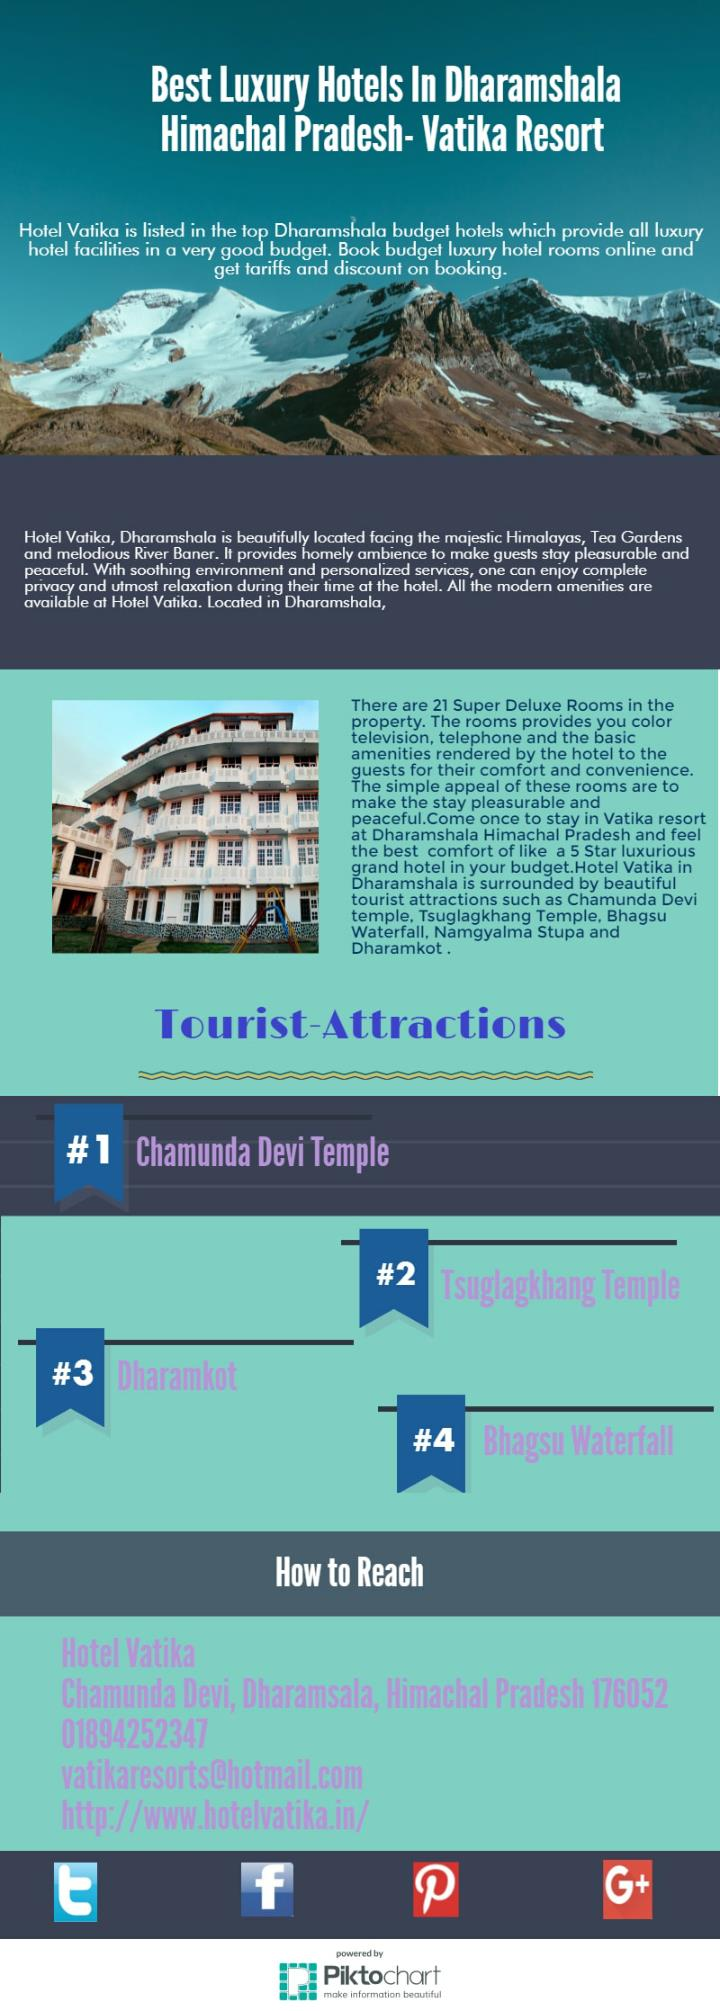 Best luxury hotels in dharamshala himachal pradesh vatika resort